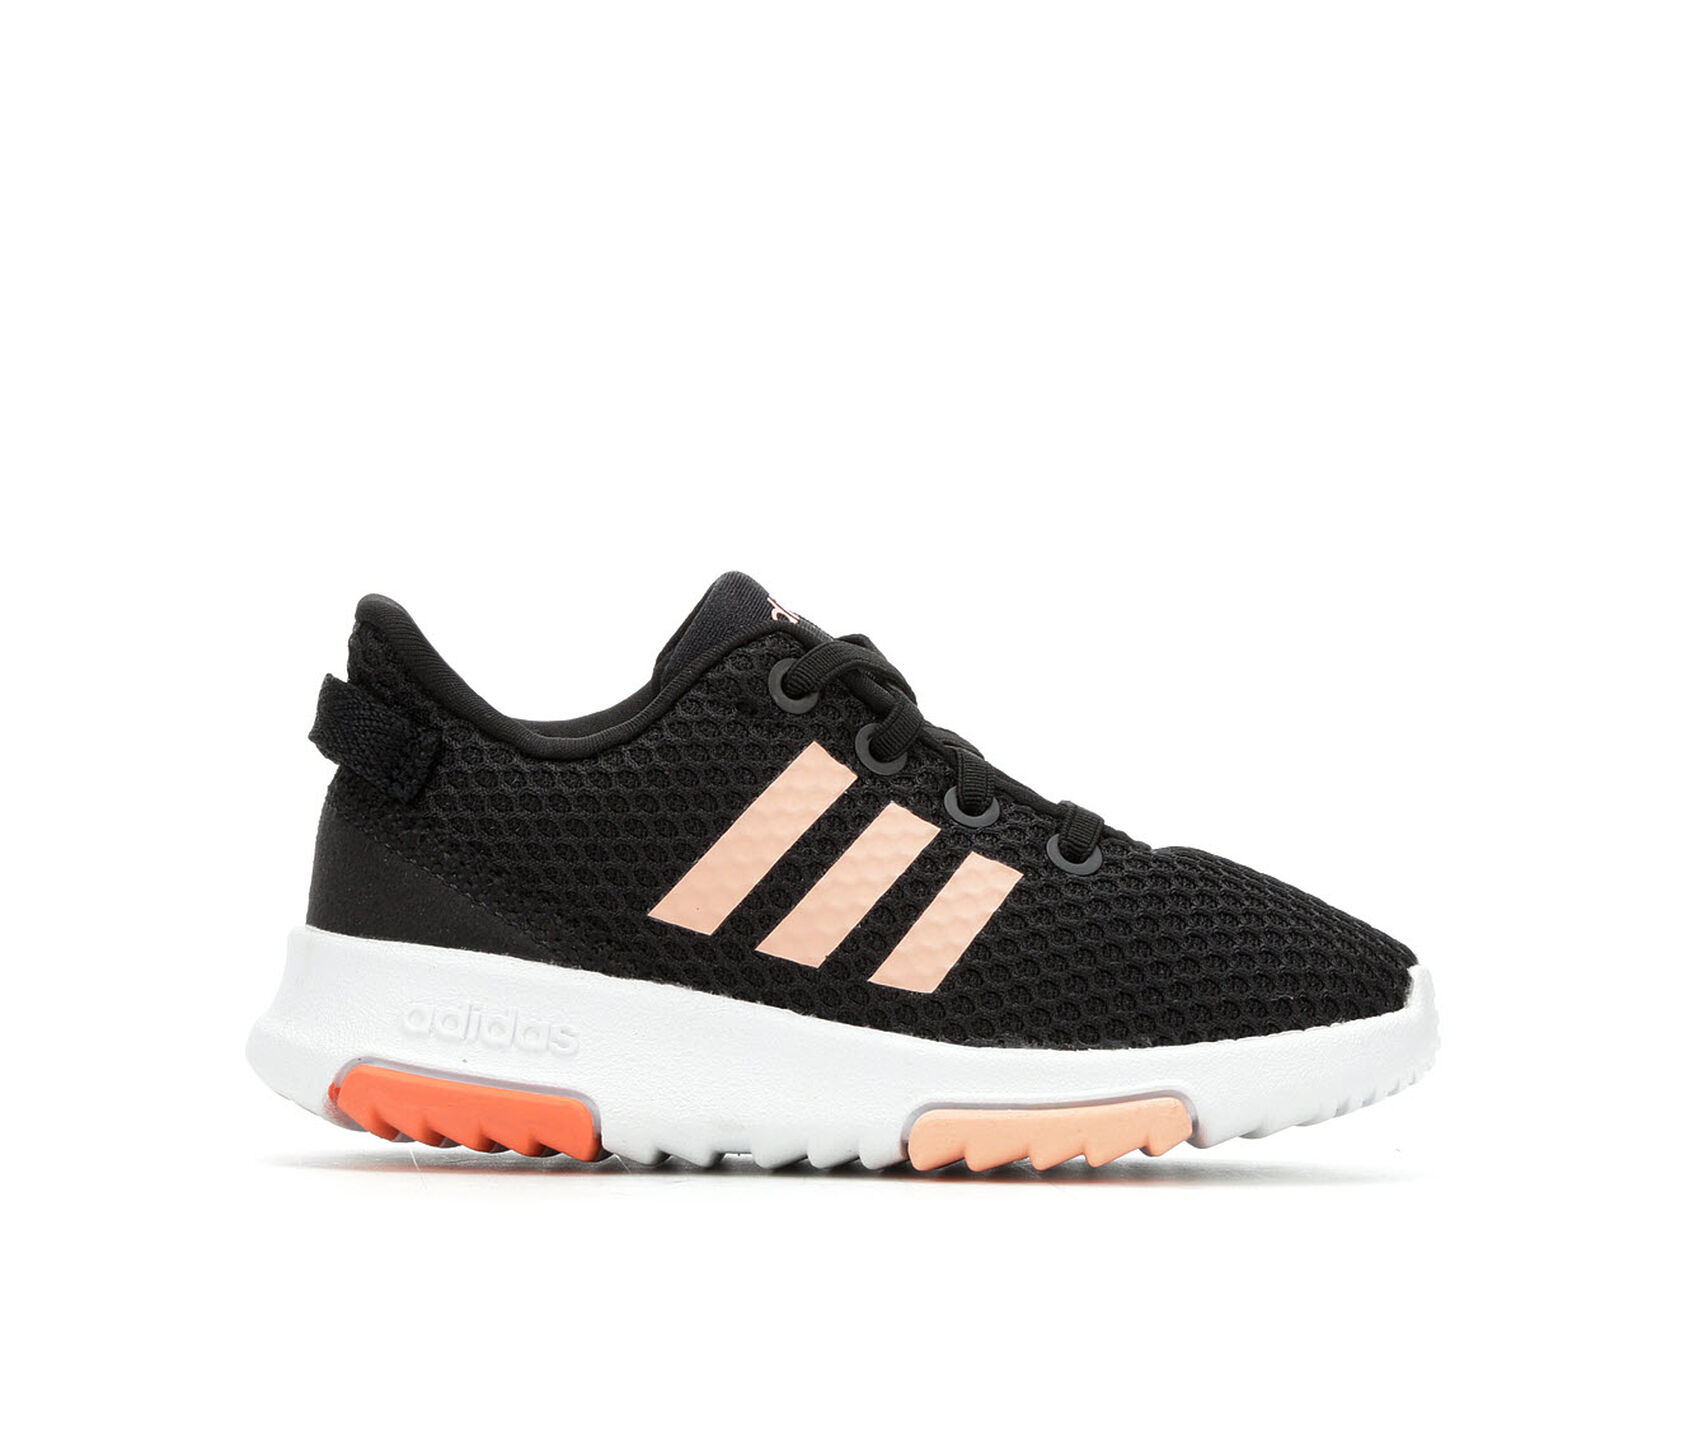 how to buy save up to 80% biggest discount Girls' Adidas Infant & Toddler Racer TR Athletic Shoes